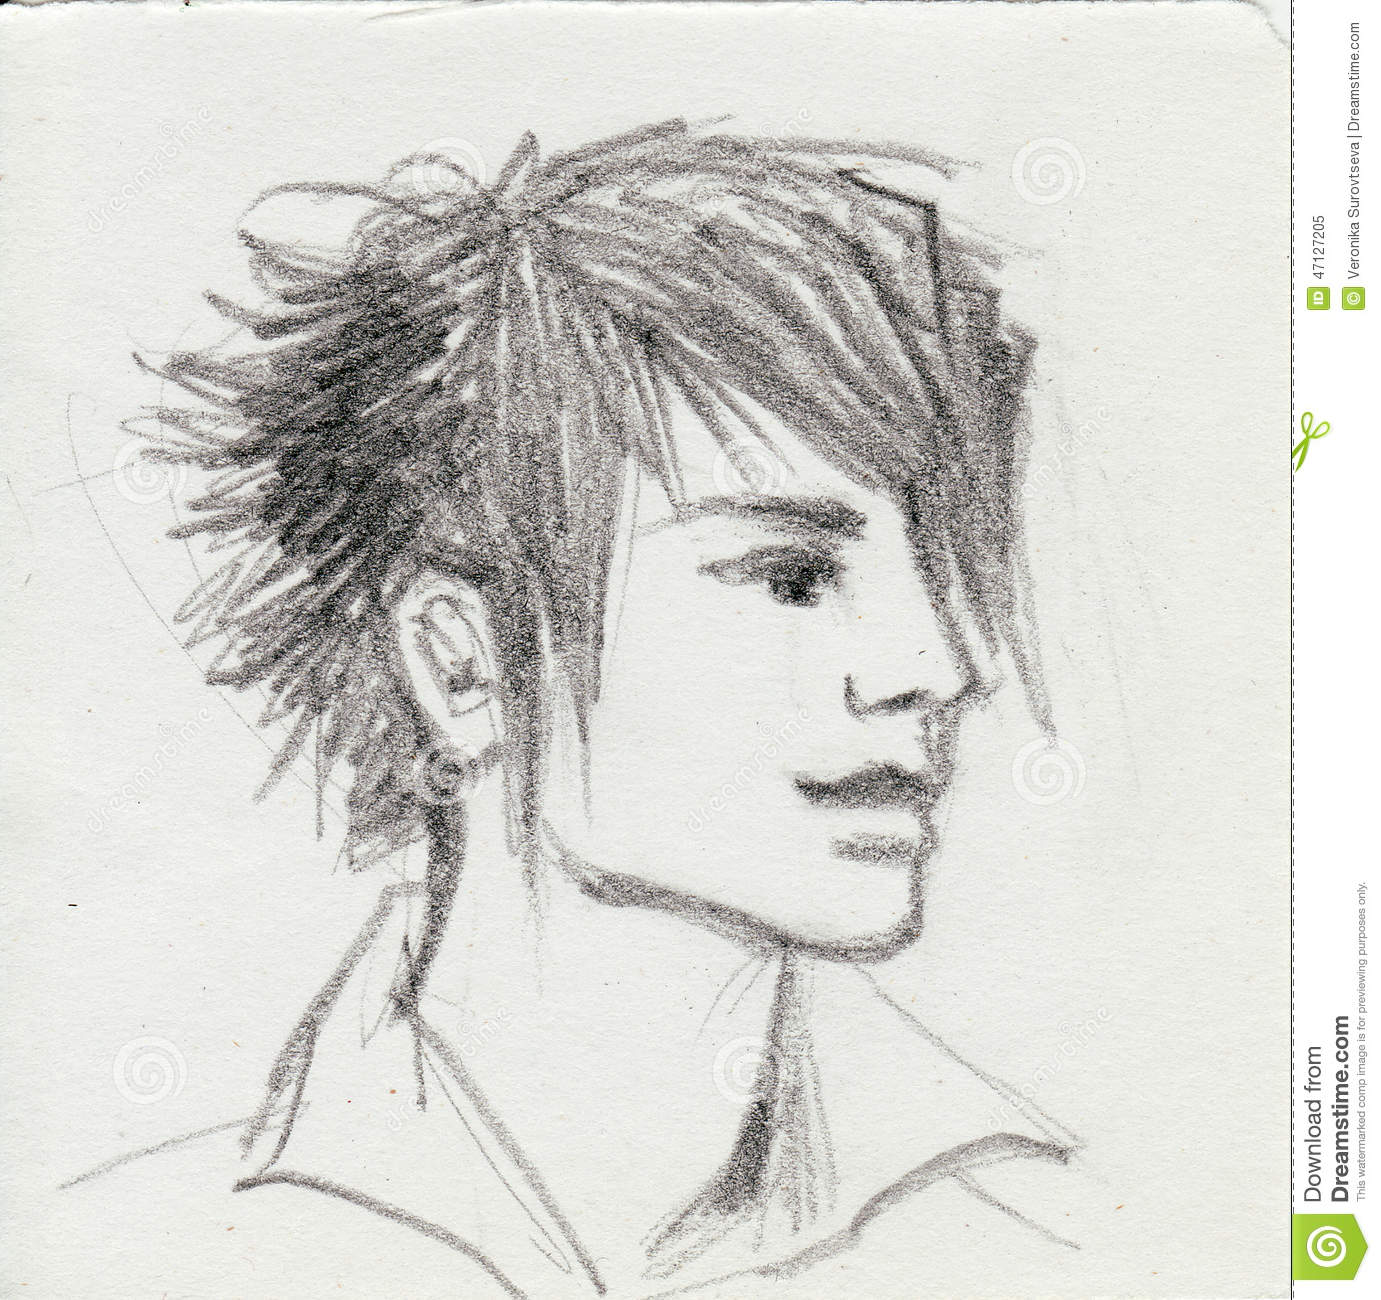 Three quarter view of an emo boy head original pencil sketch